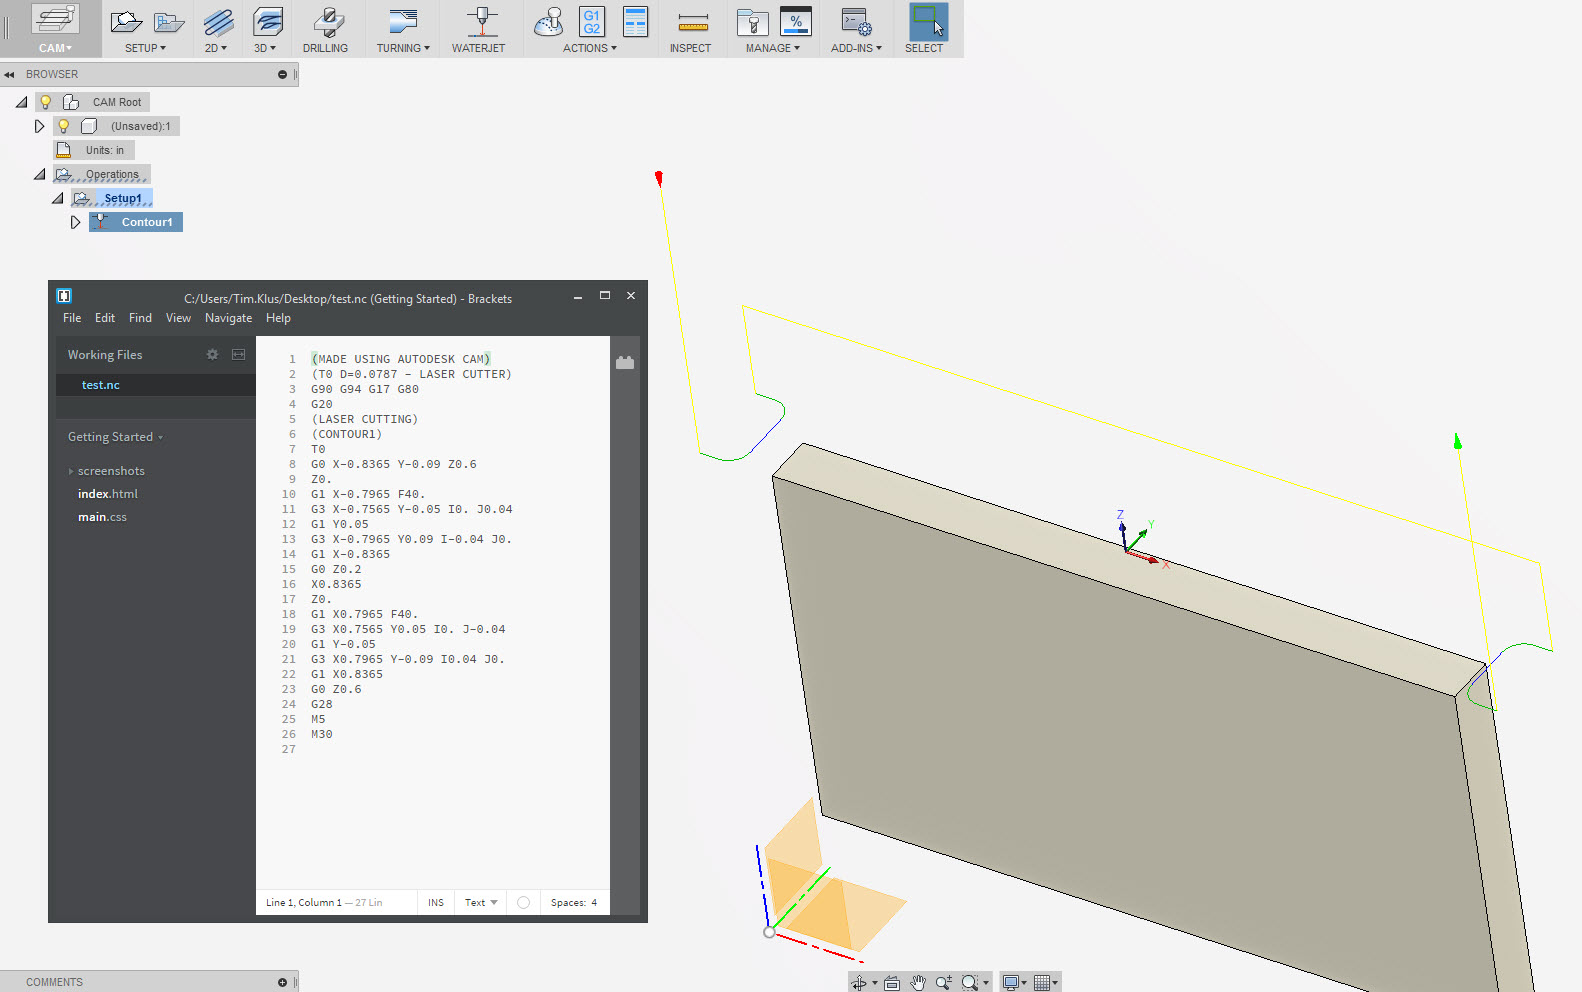 Solved: GRBL laser cutter power settings with pwm - Autodesk